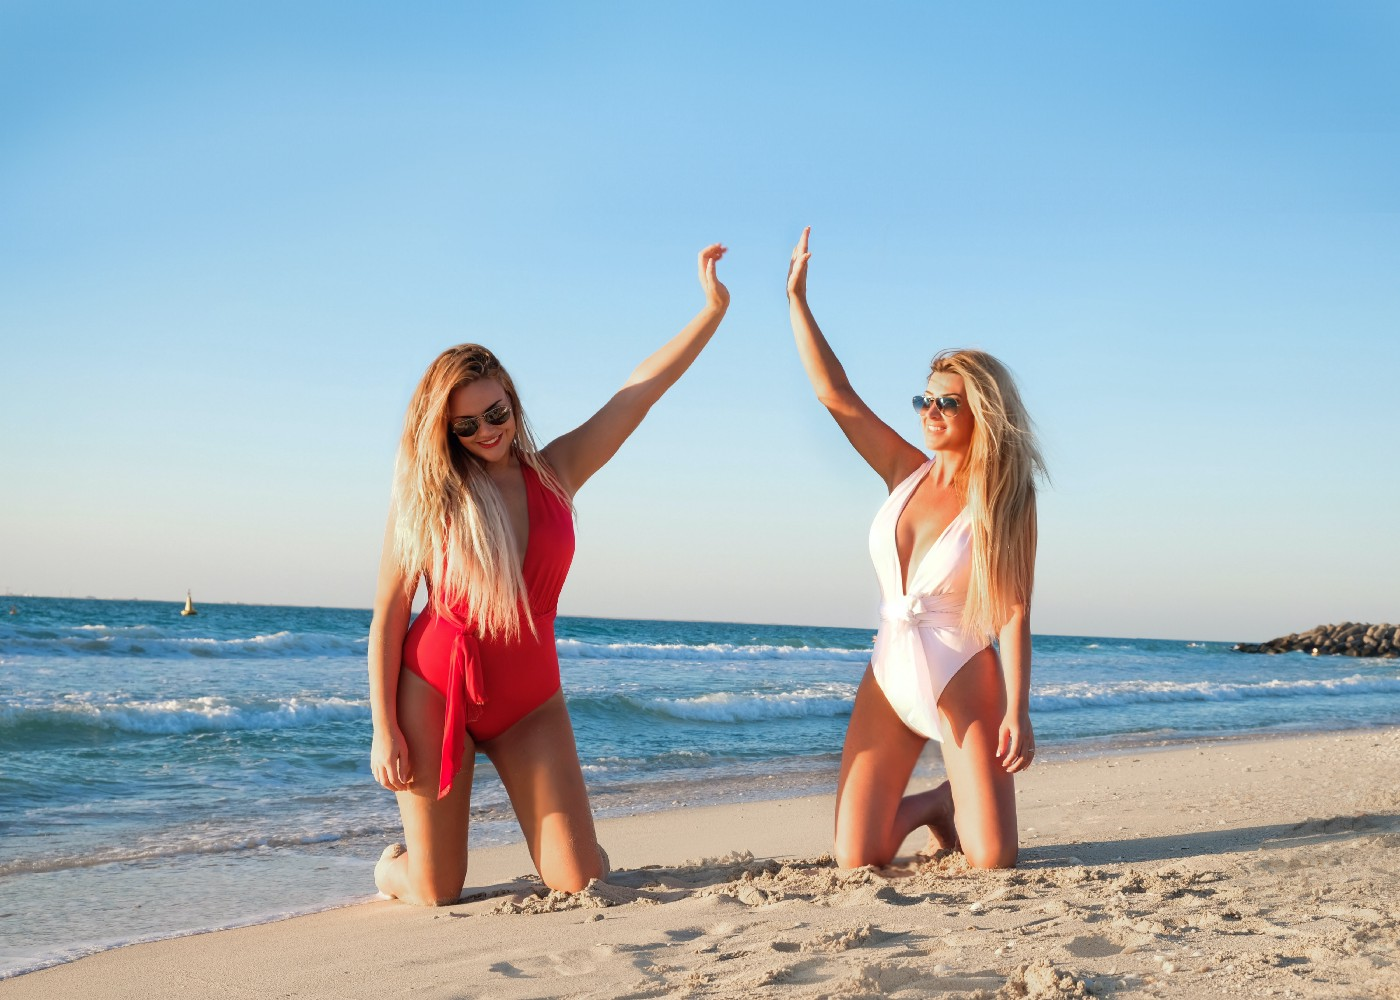 Two beautiful women on the beach about to high five each other.